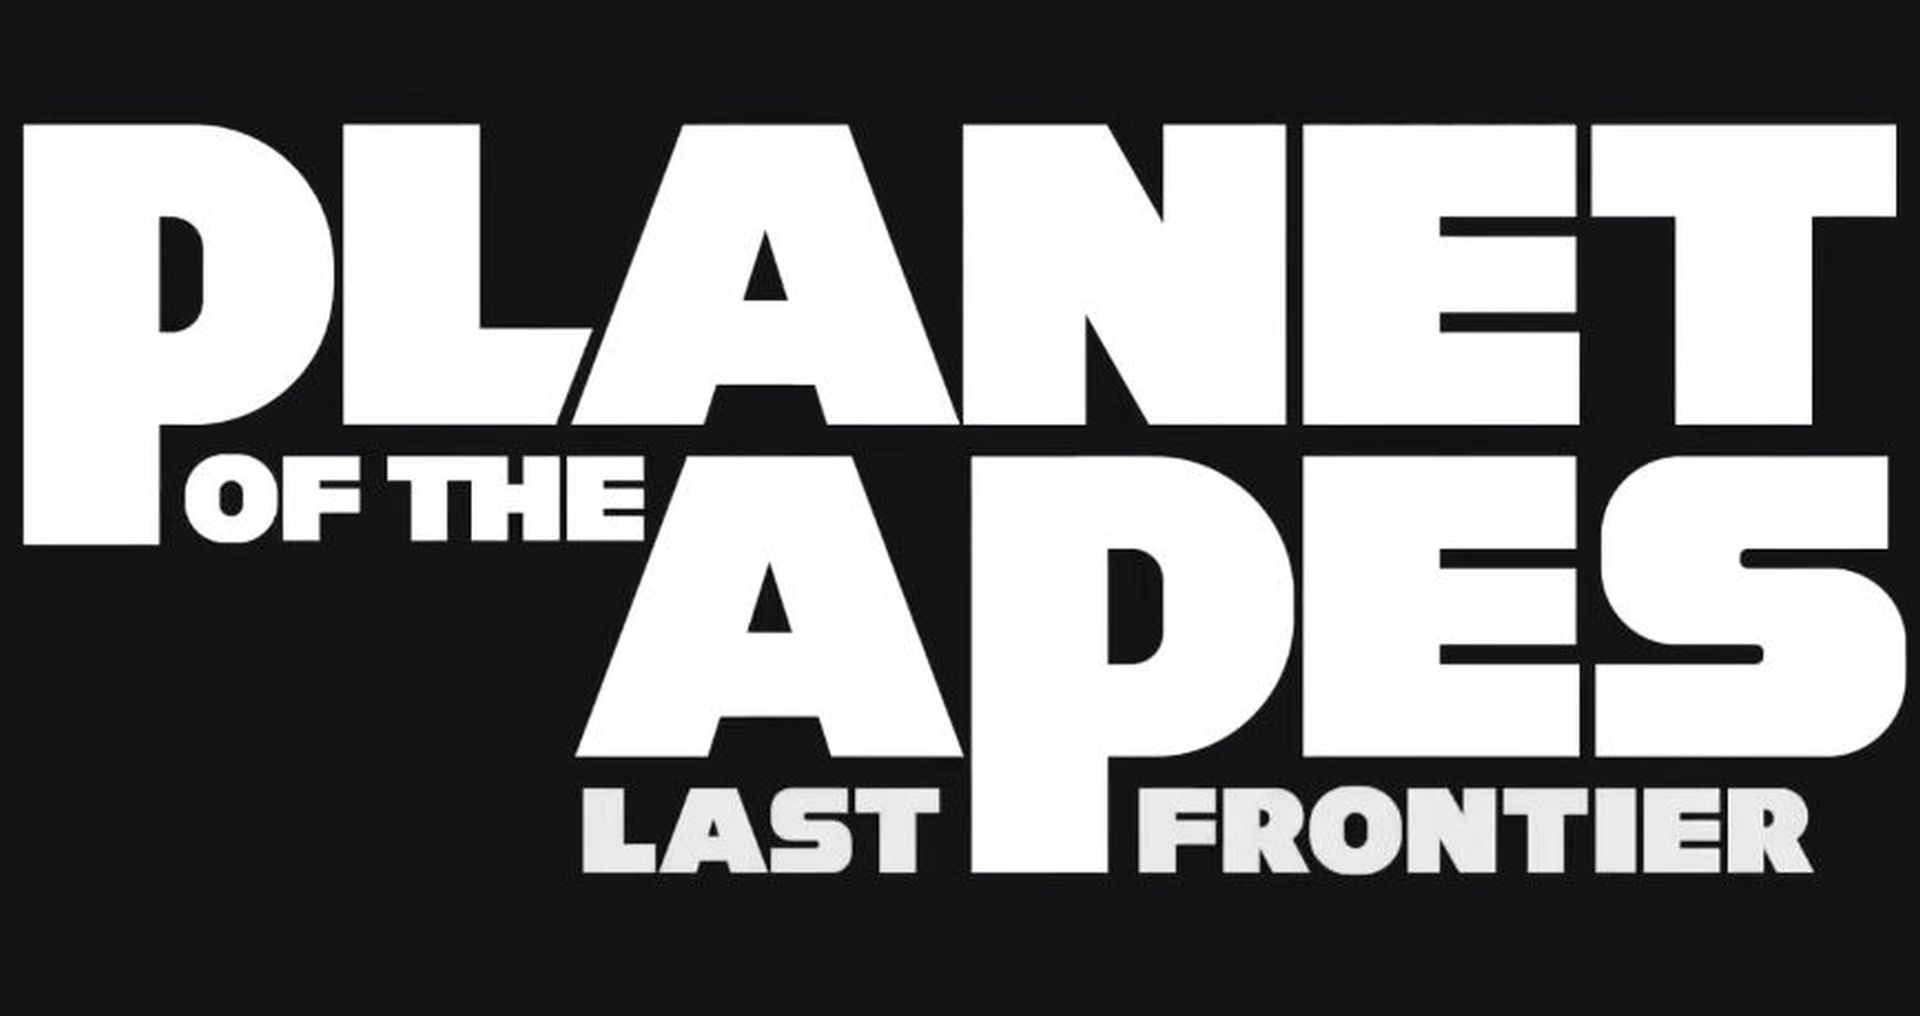 Planet of the Apes - Last Frontier